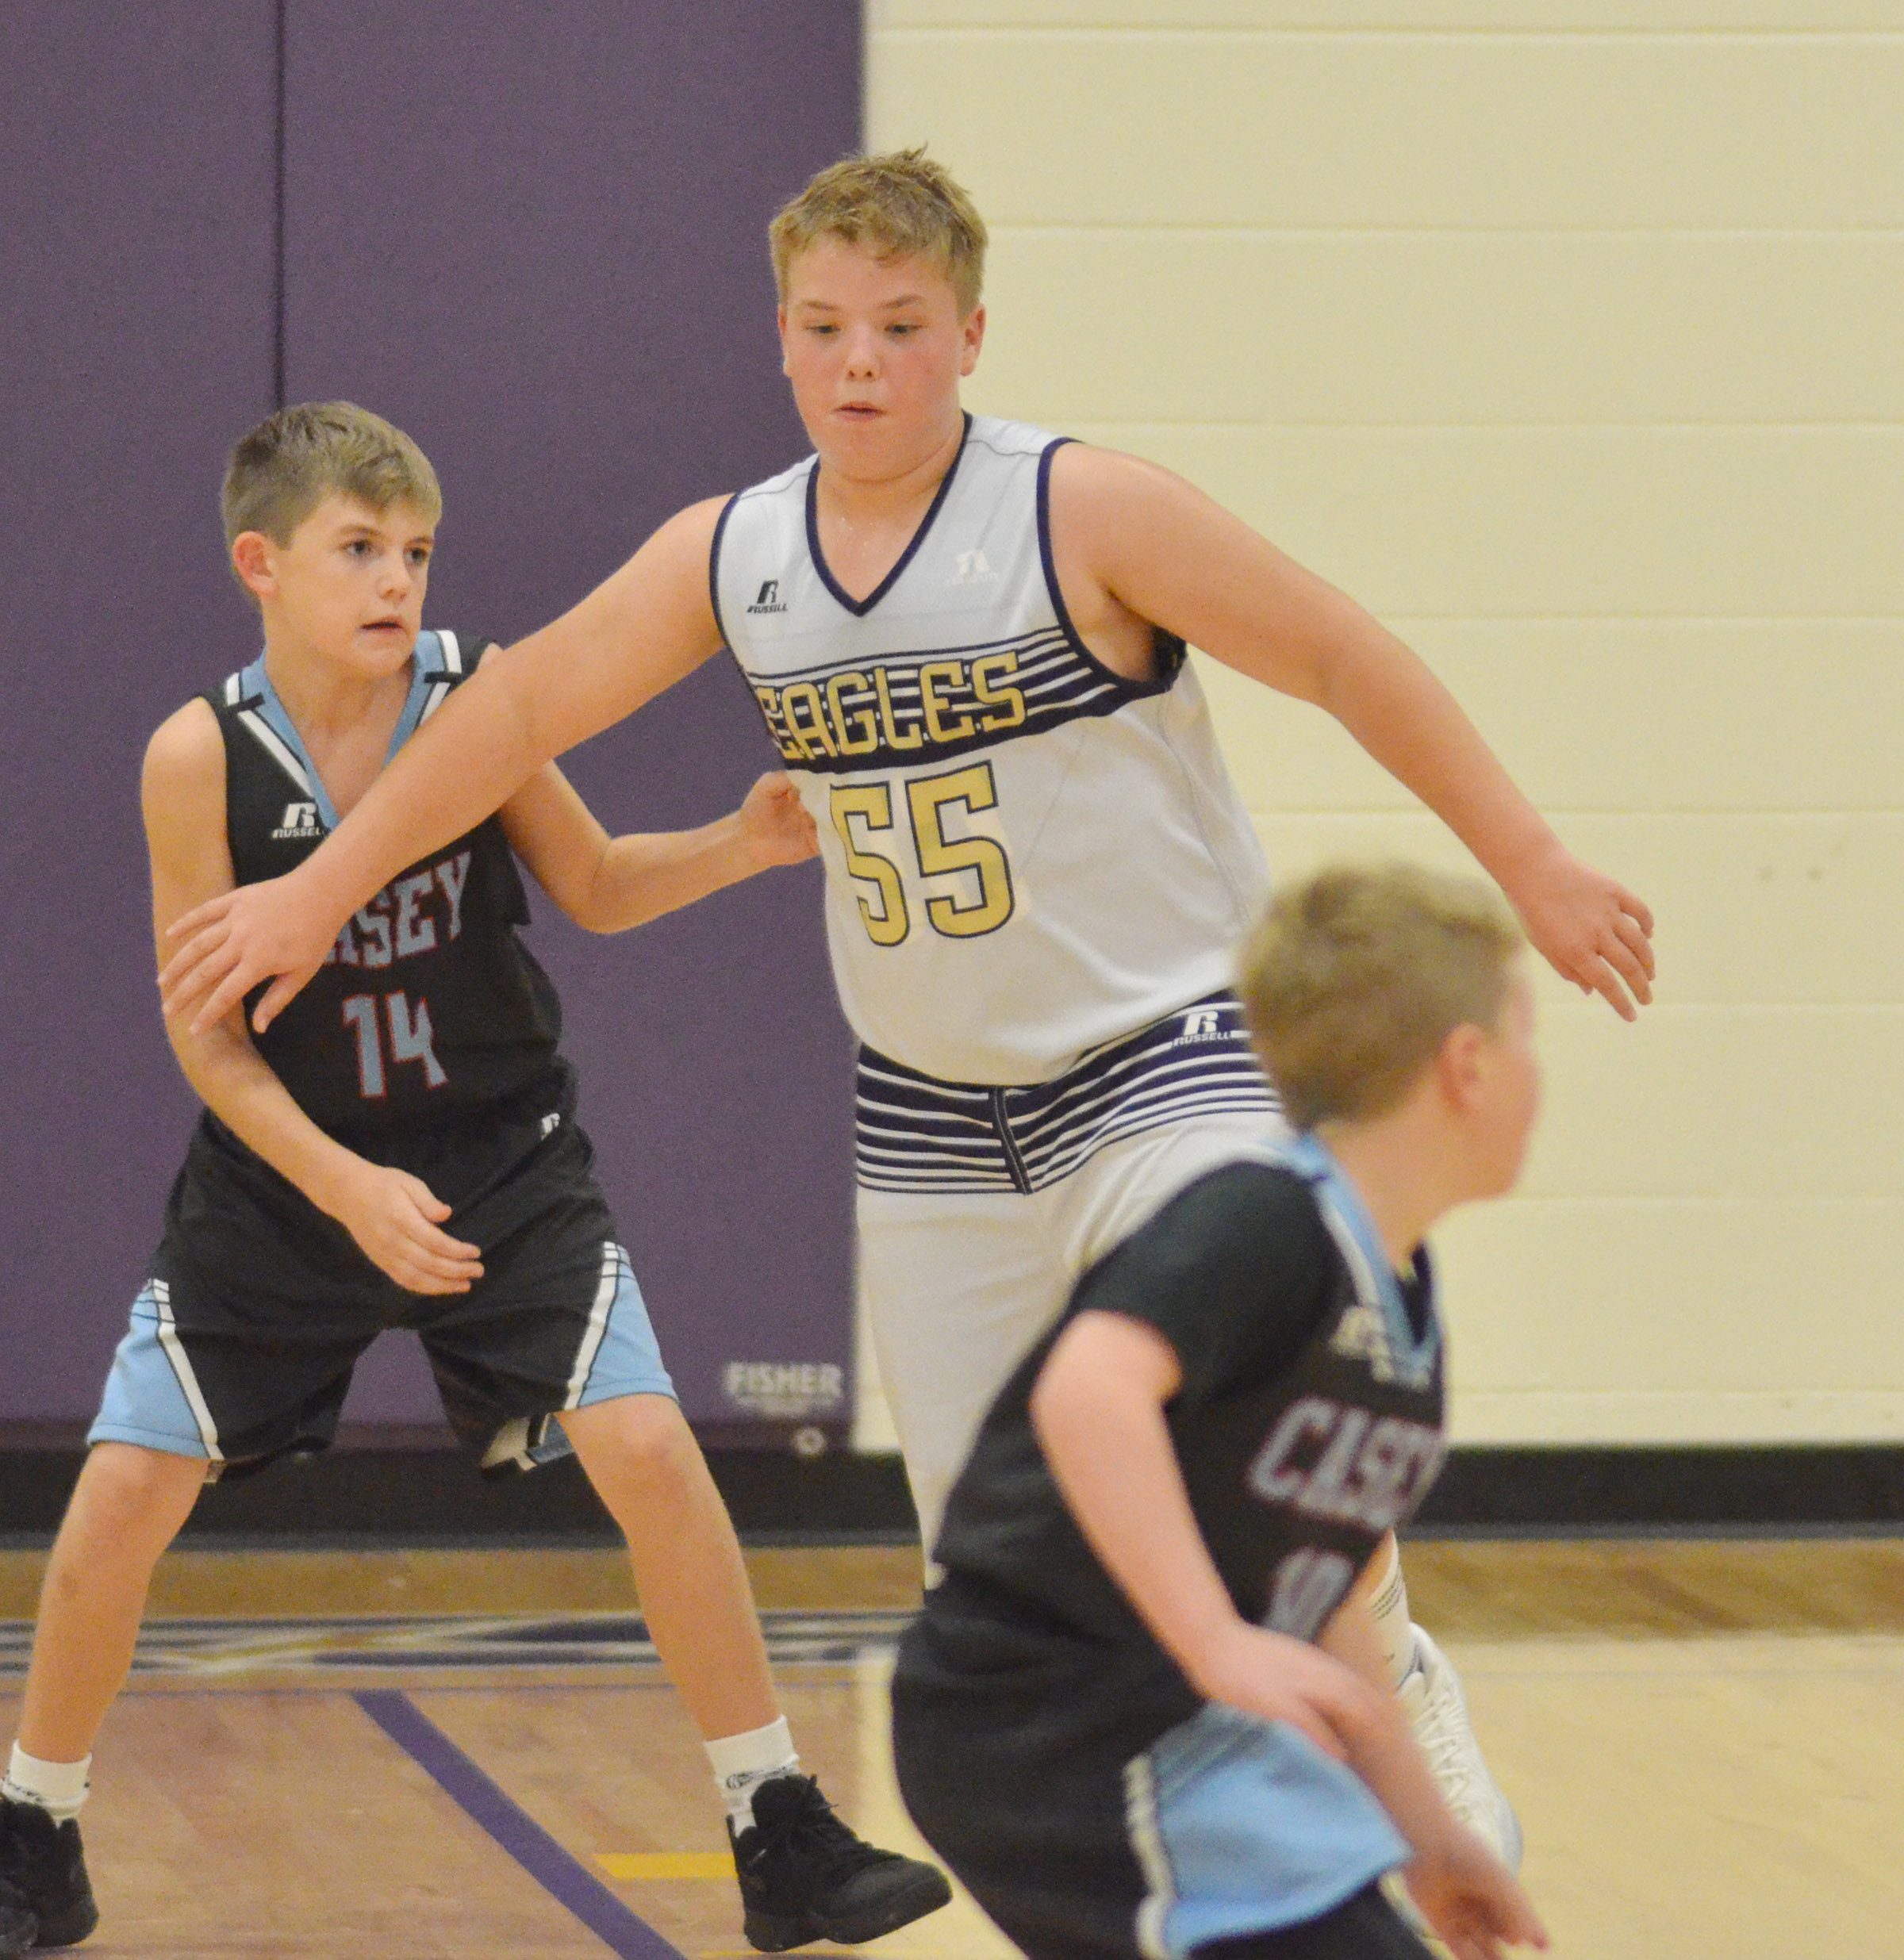 CMS sixth-grader Ryan Grubbs plays defense.